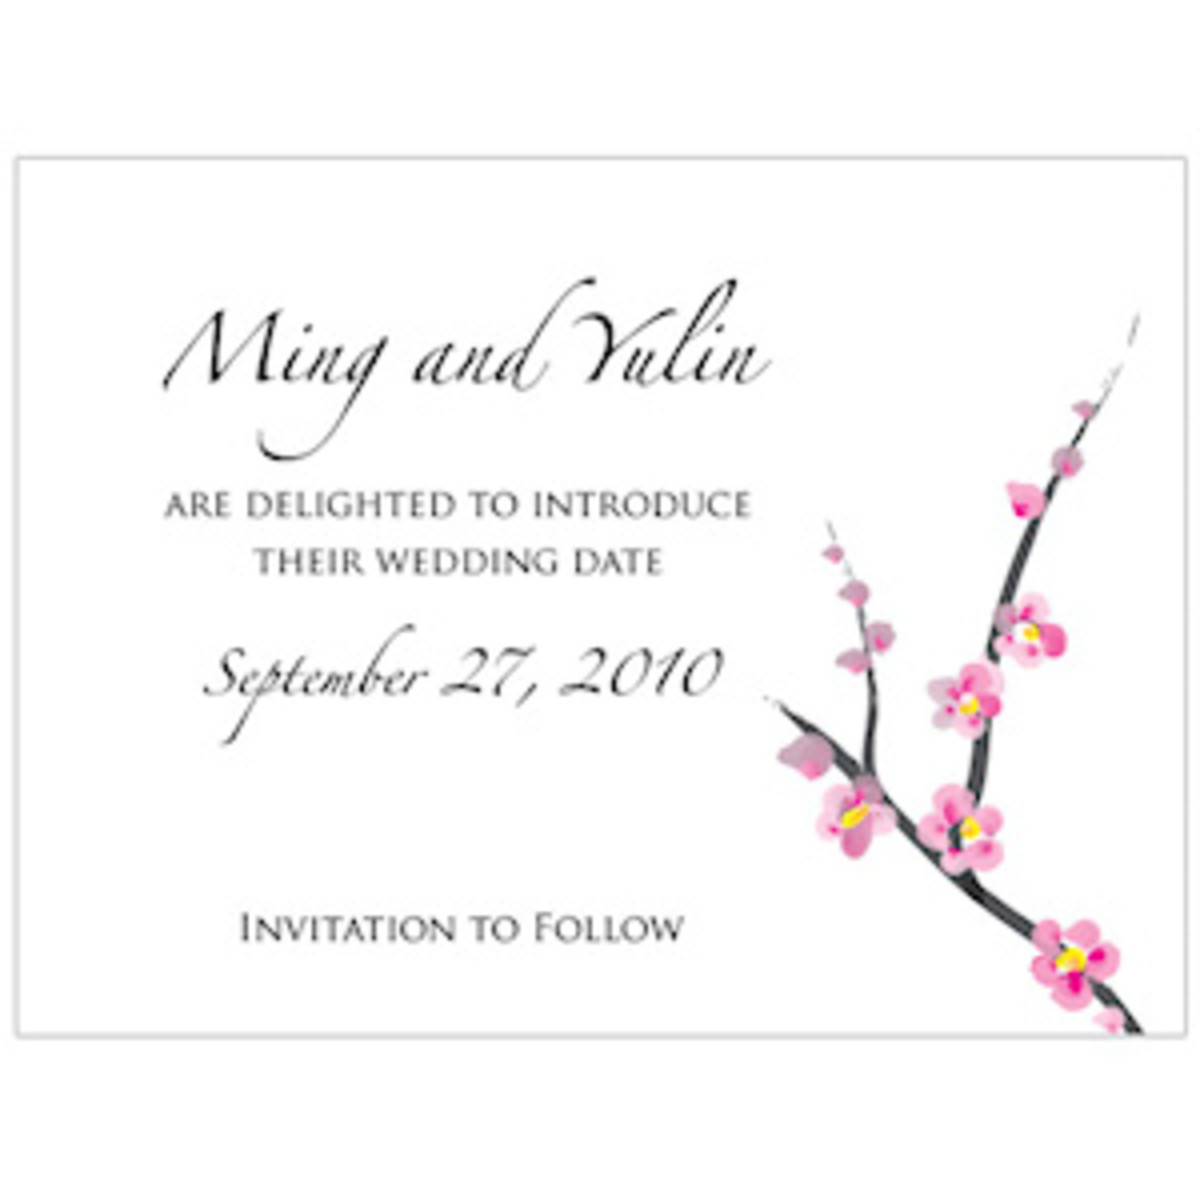 Personalized Save The Date Cards.